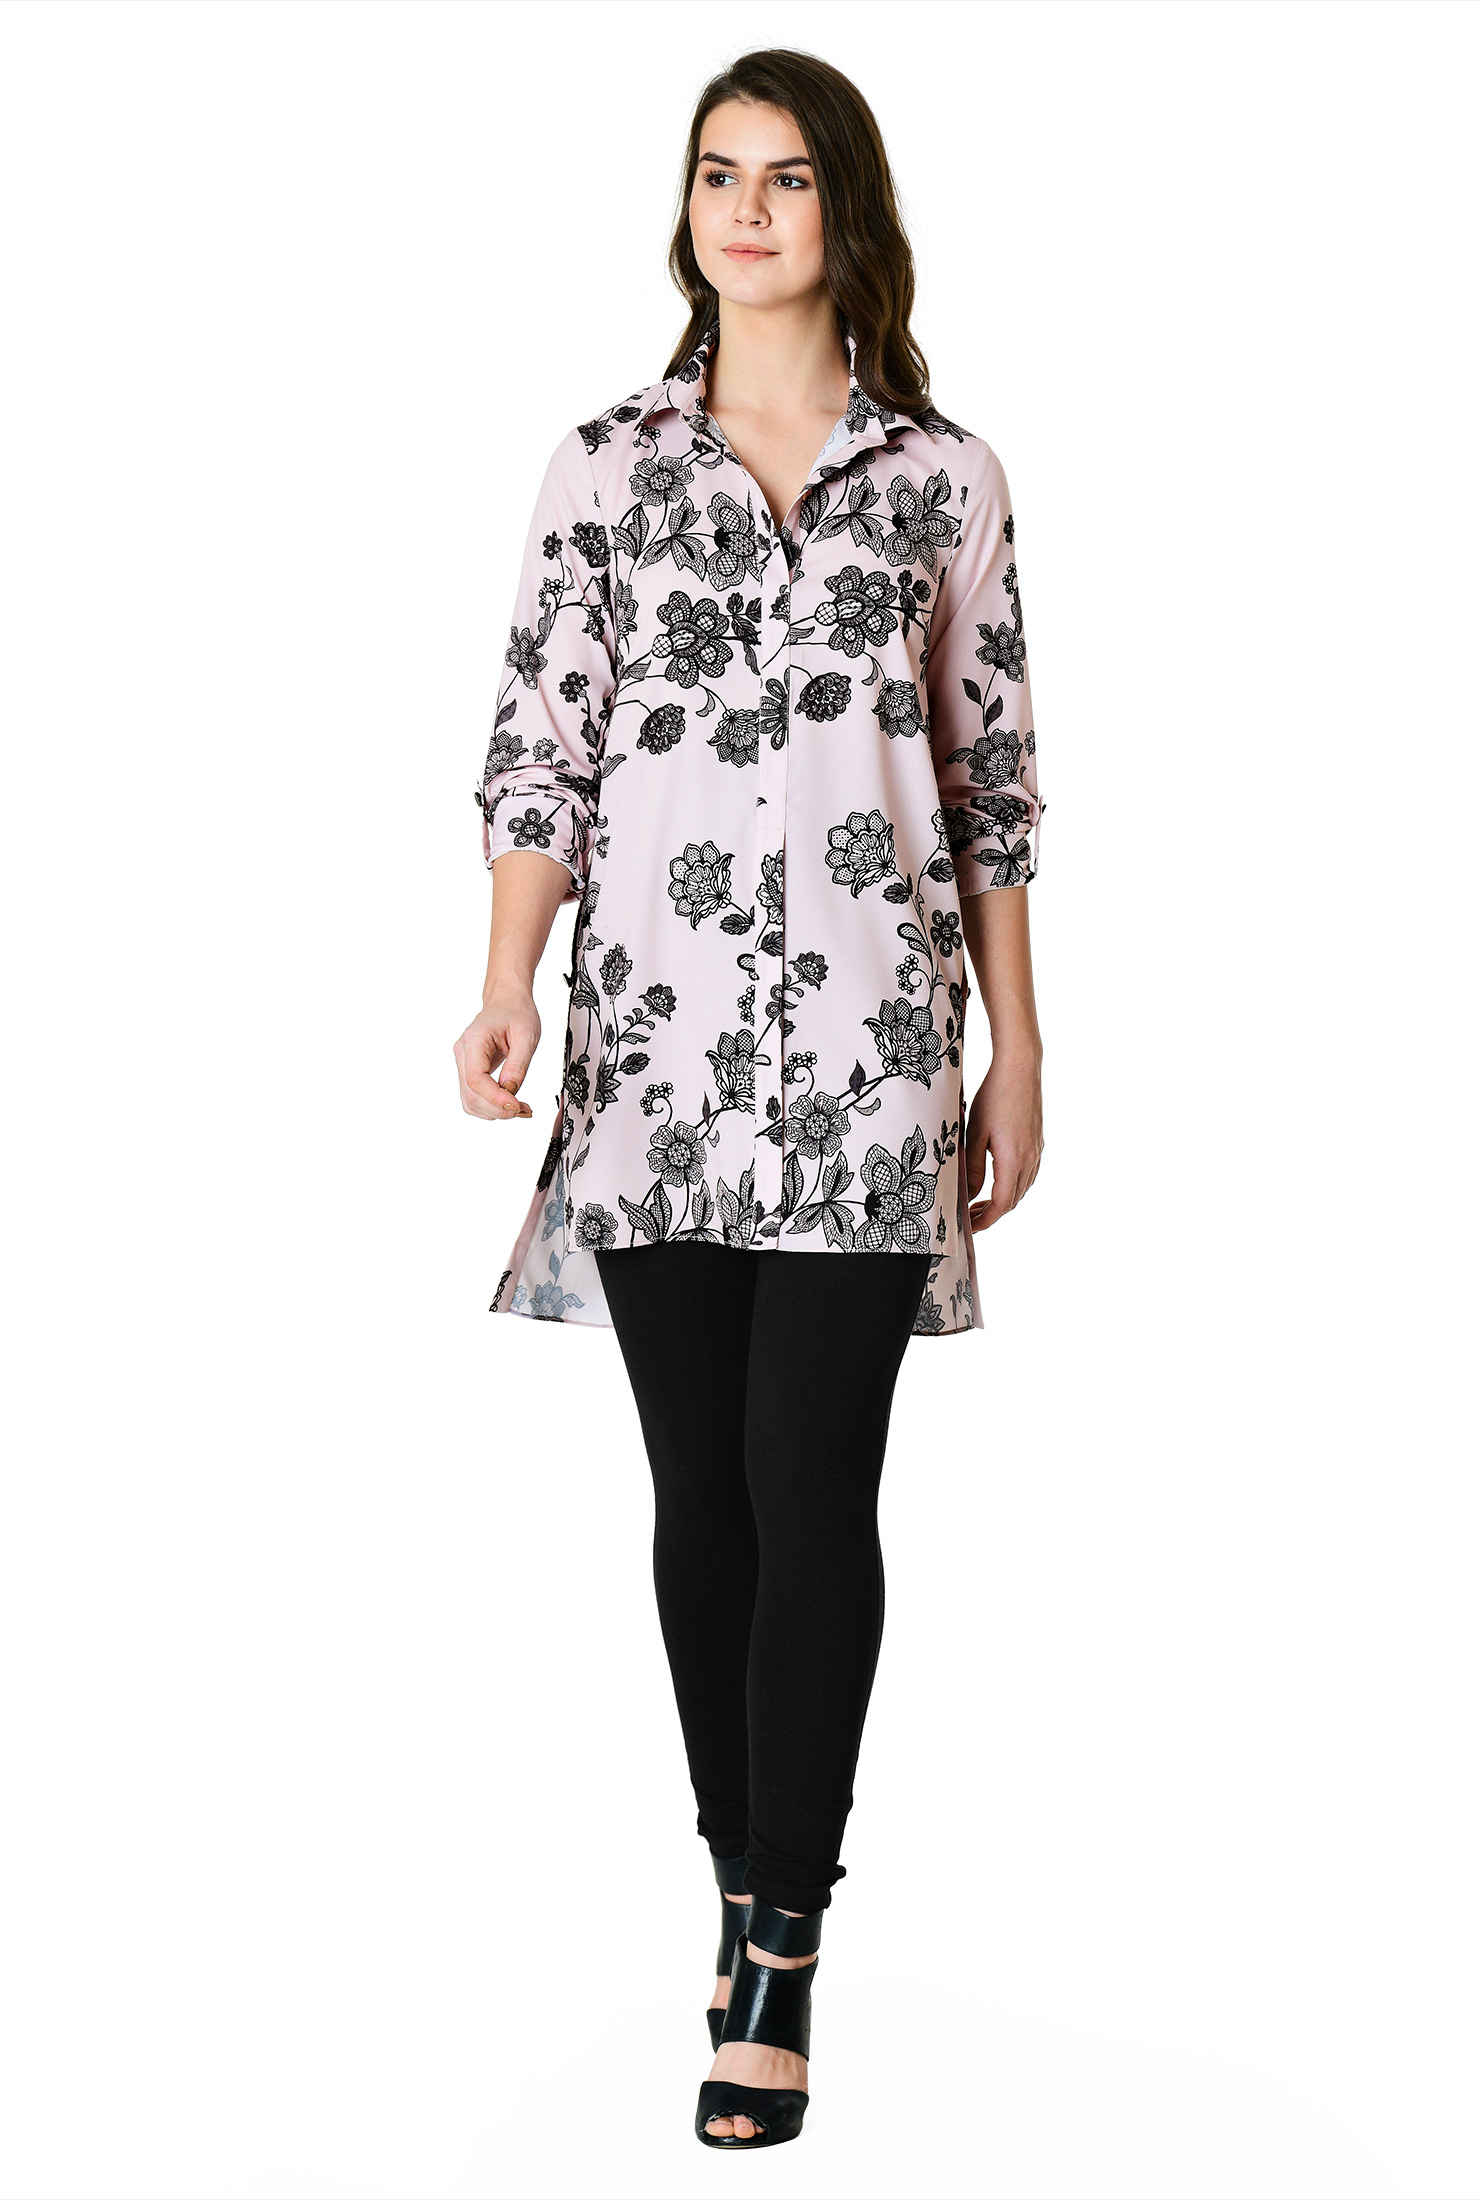 a0b90339d Where Can I Buy A Long Shirt To Wear With Leggings - DREAMWORKS